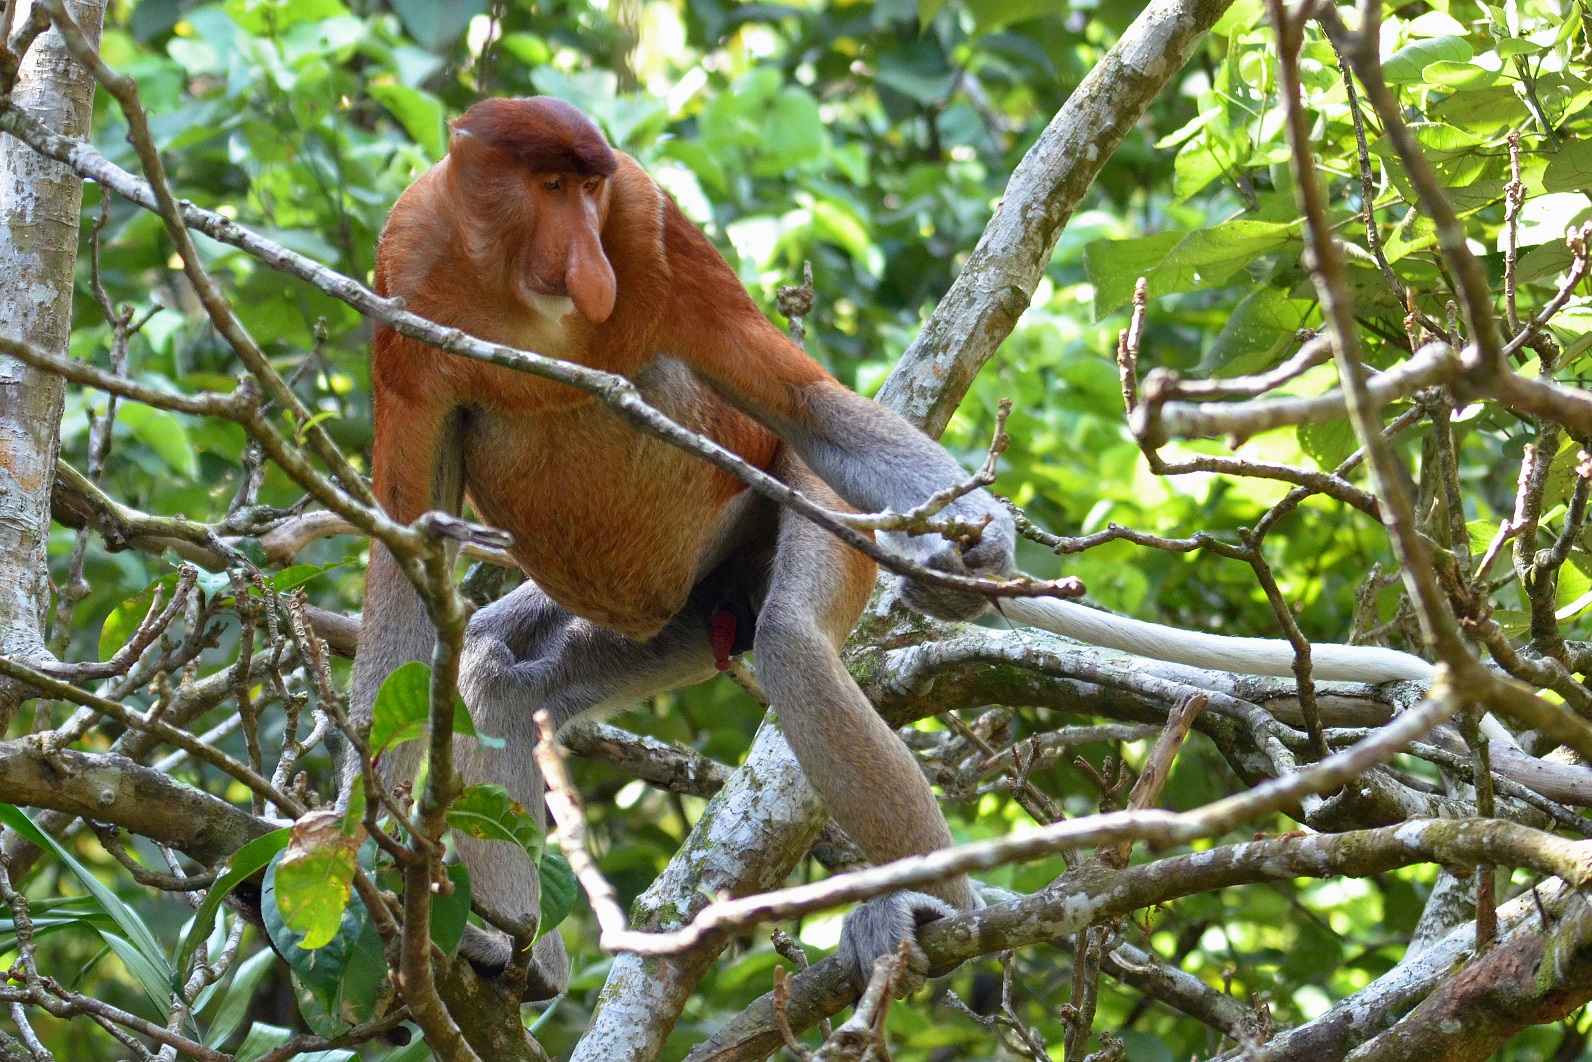 This male proboscis monkey ignores my camera as he moves deeper into the coastal forest.Rare and endangered, this species is threatened by deforestation and habitat destruction in many parts of Borneo.